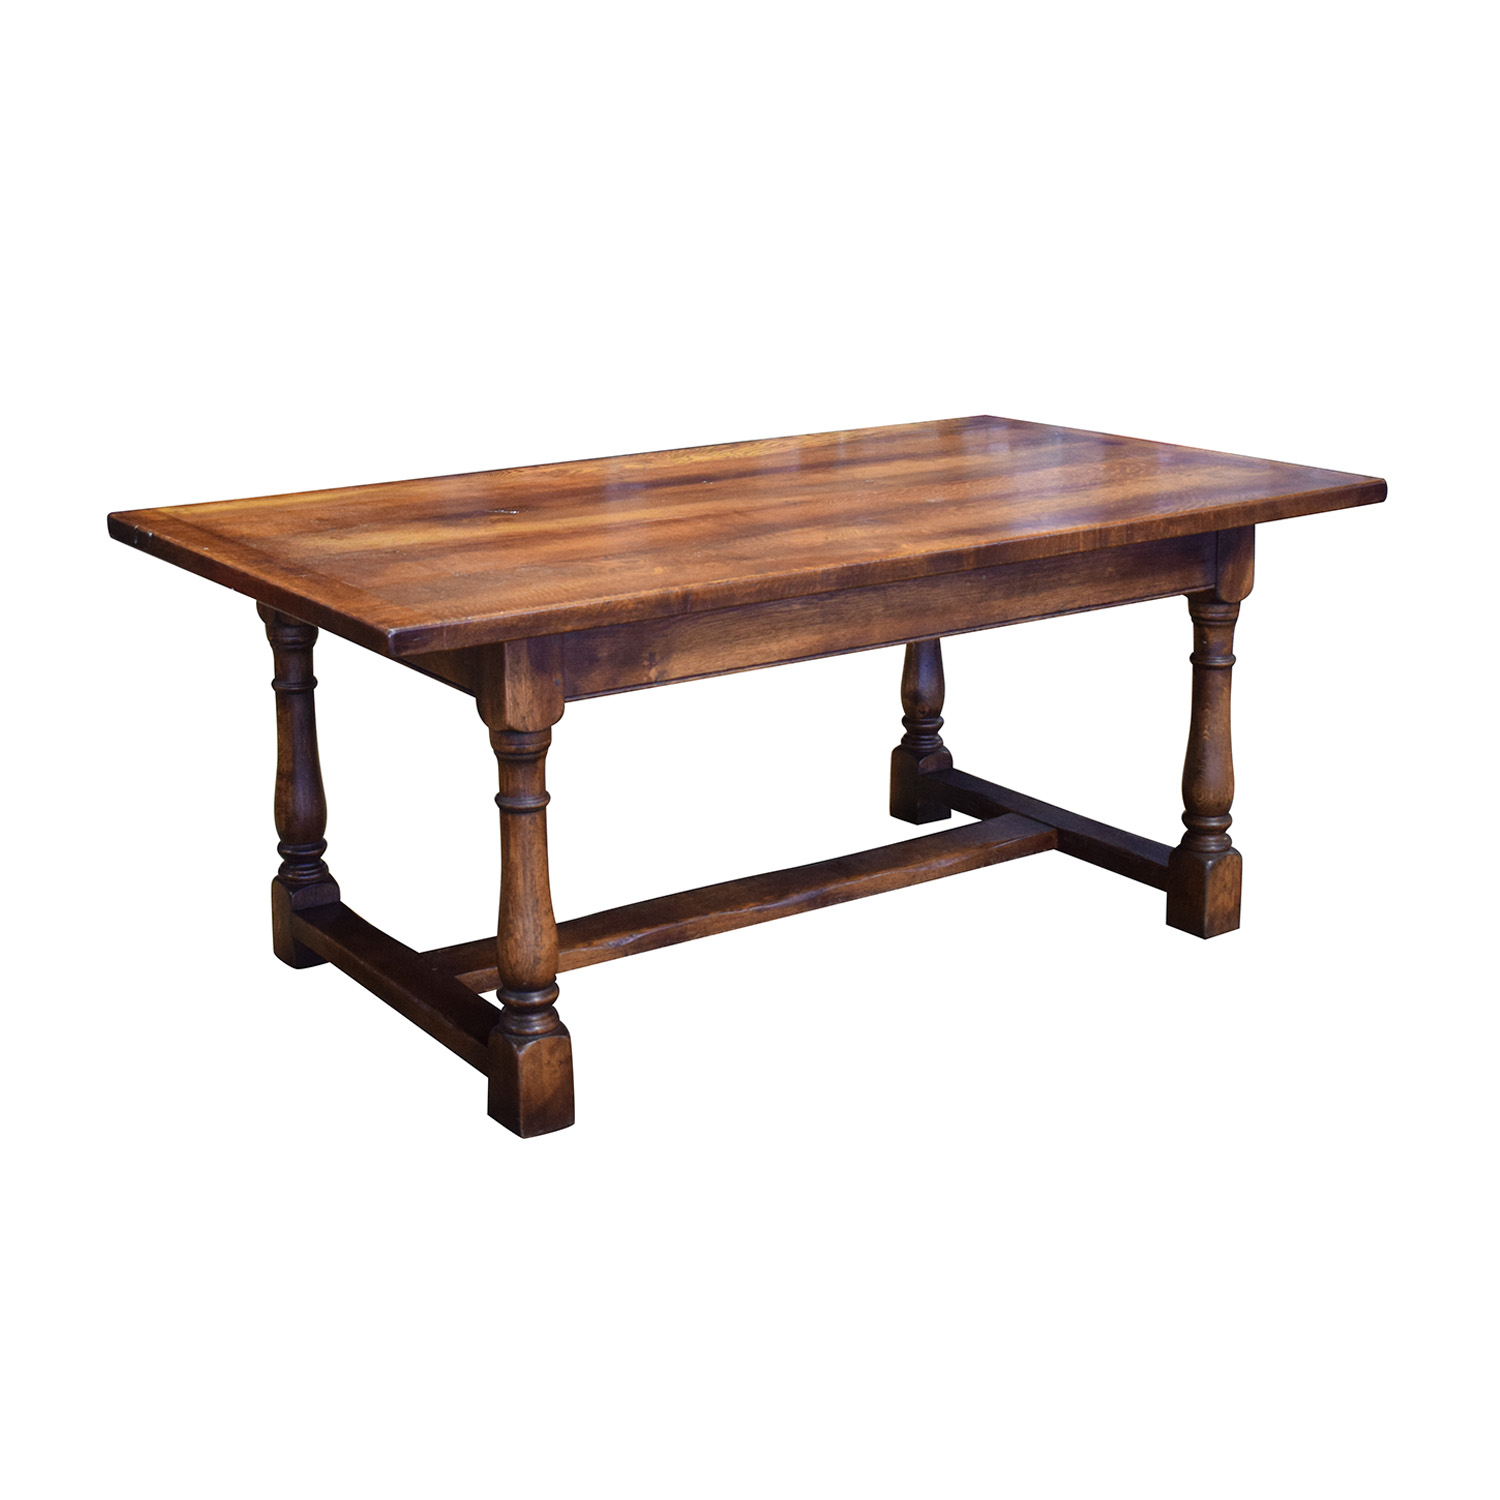 Fauld Refectory Wood Dining Table / Dinner Tables